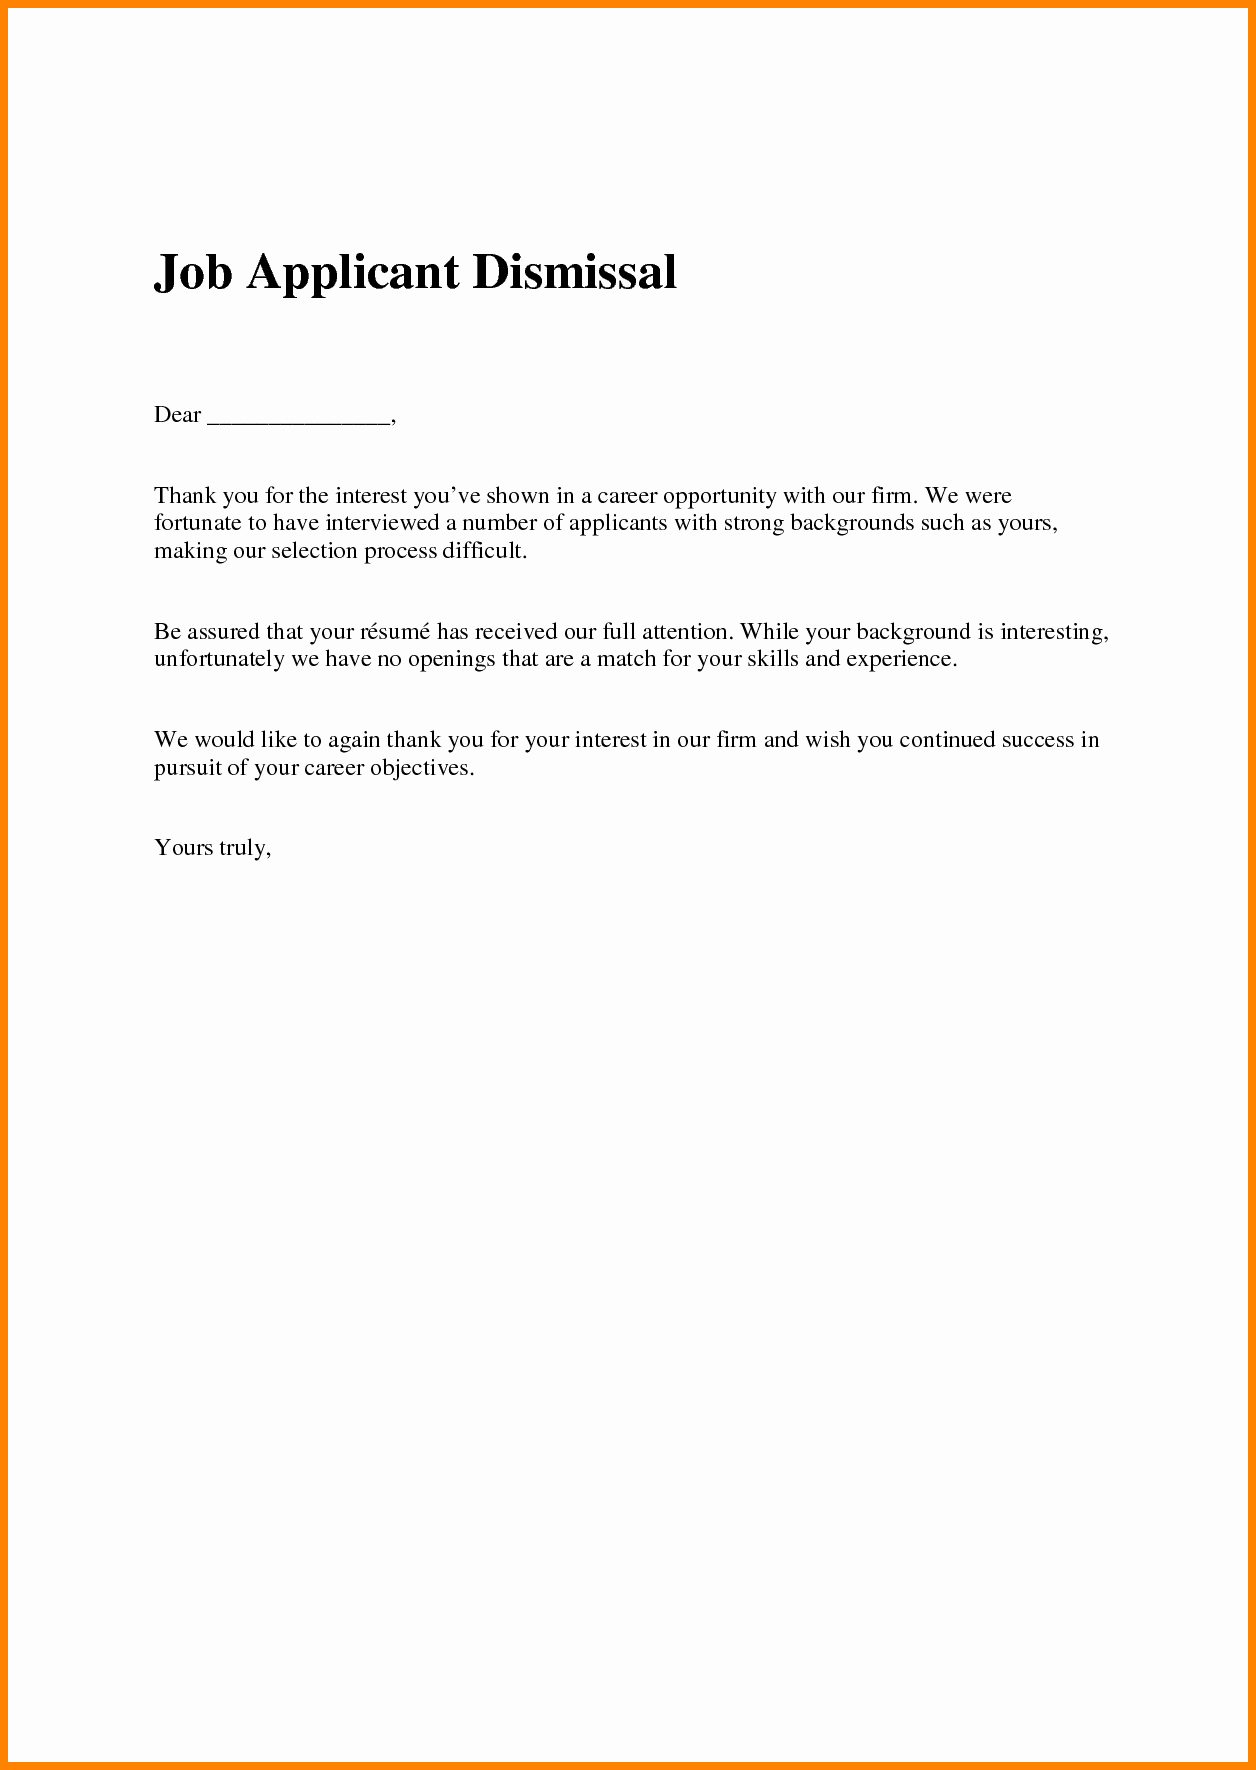 Job Rejection Email Template Unique 16 Job Rejection Letter Sample to Applicant